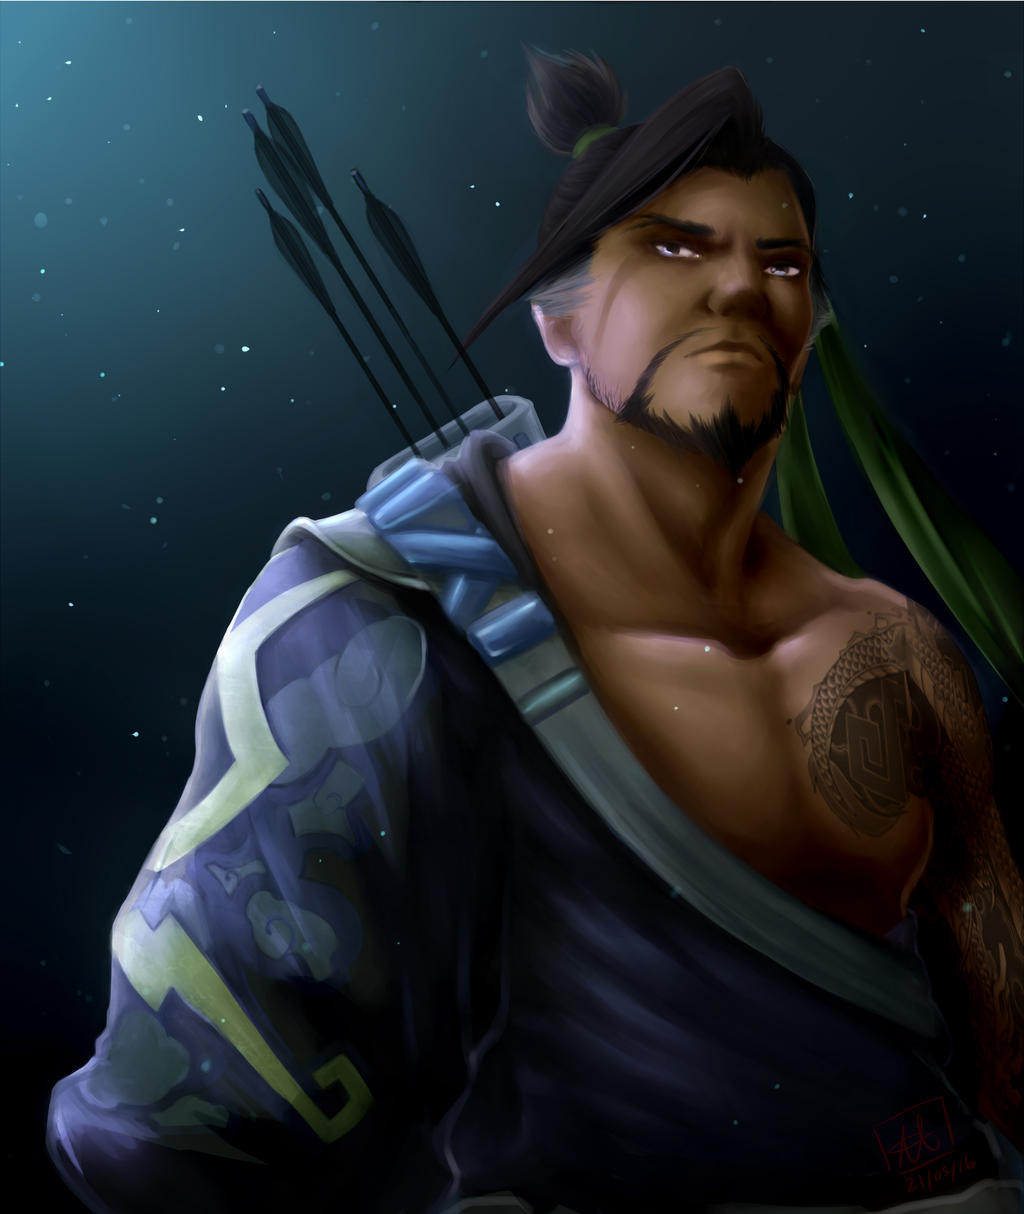 Hanzo Wallpaper: Hanzo-OVERWATCH By ZZshadowfoxZz On DeviantArt